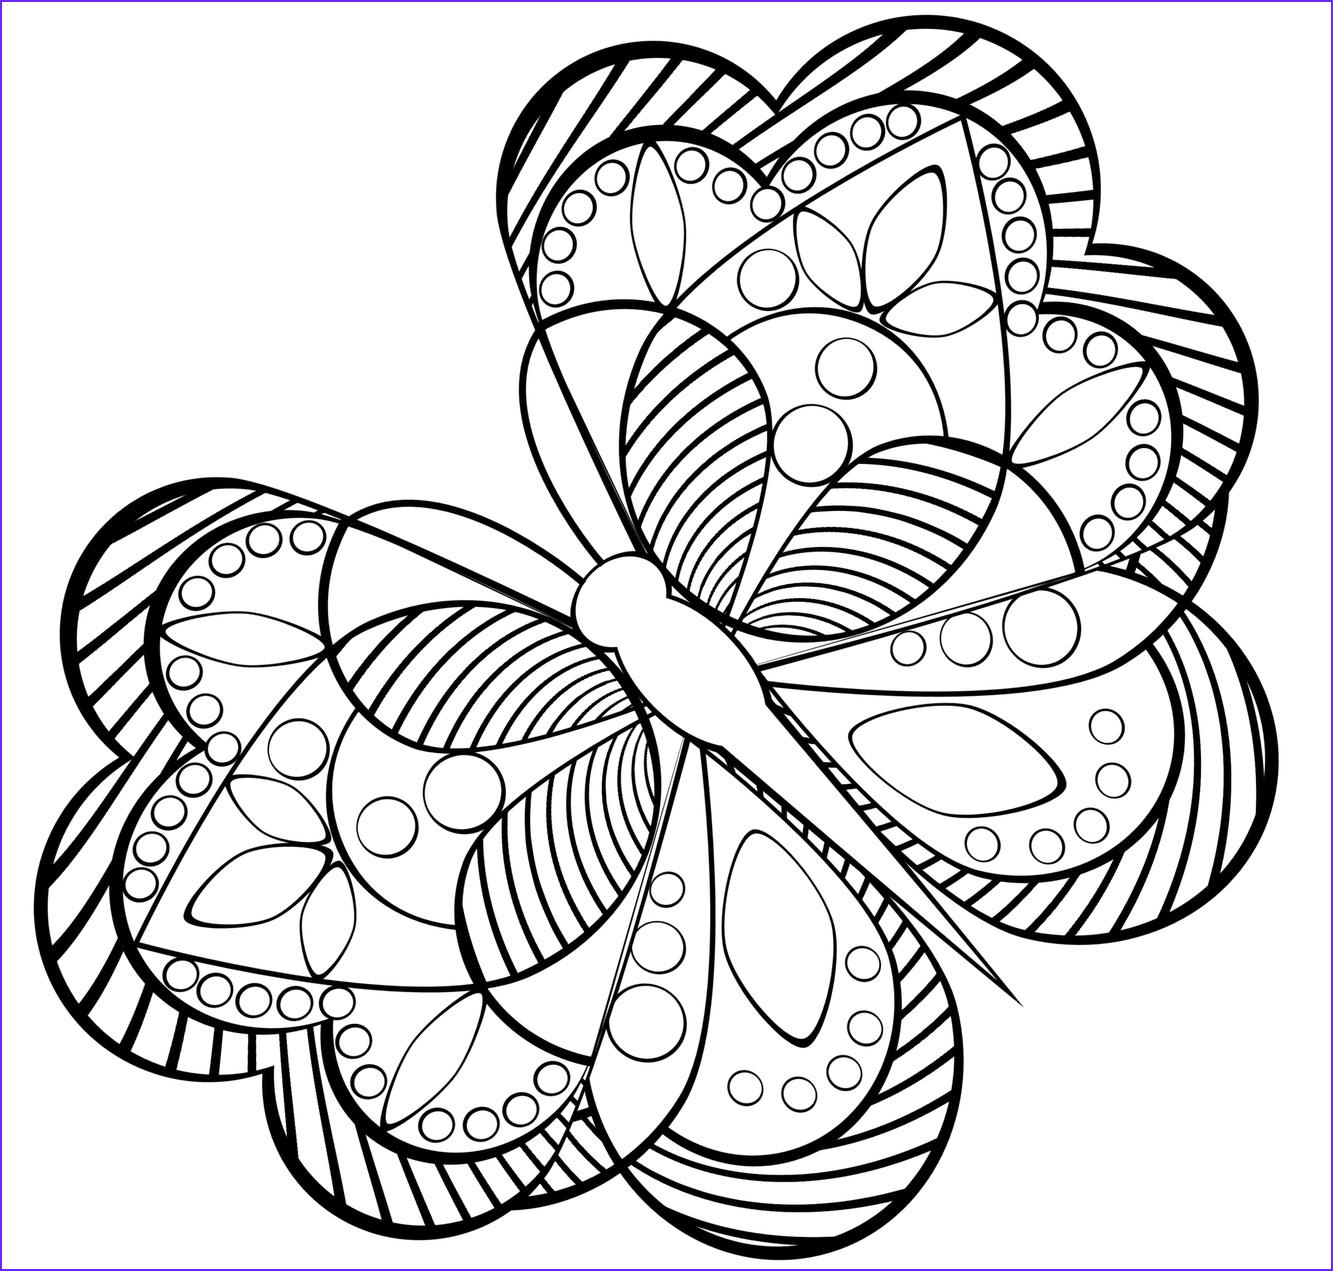 Best Adult Coloring Book Luxury Images Best Free Printable Coloring Pages for Kids and Teens